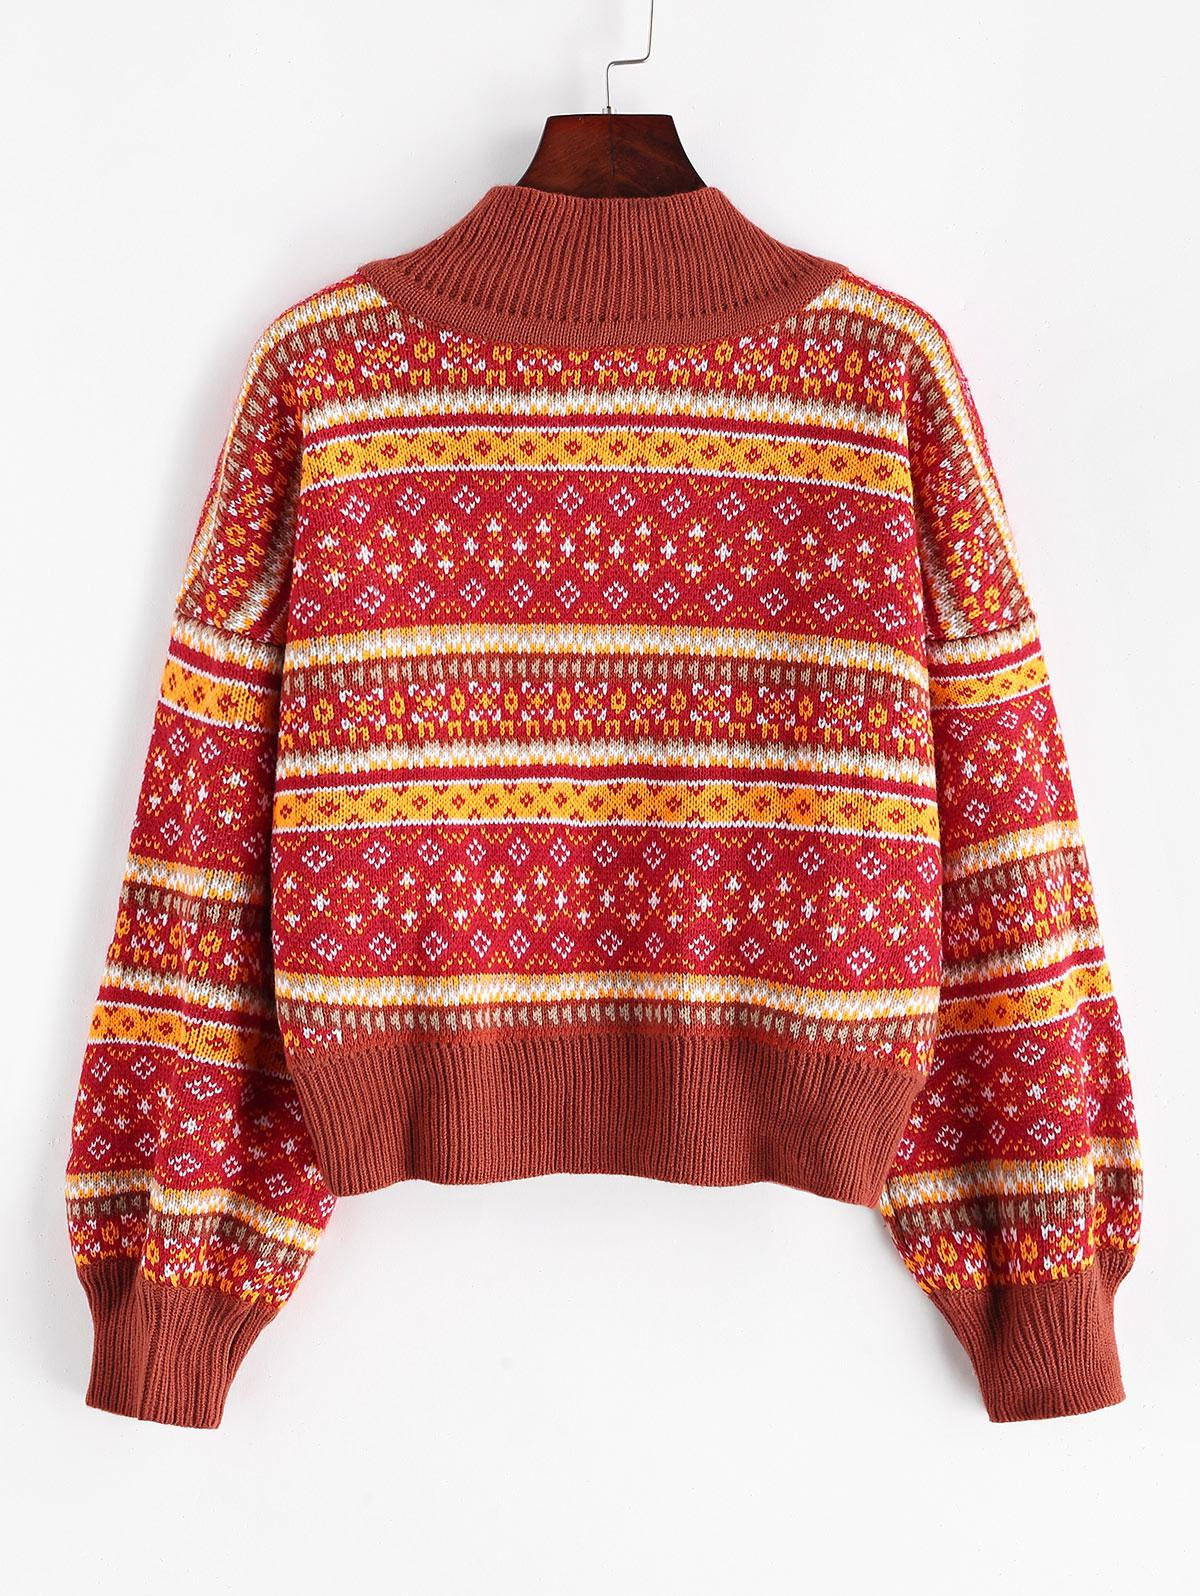 ZAFUL Mock Neck Intarsia Knit Graphic Jumper Sweater